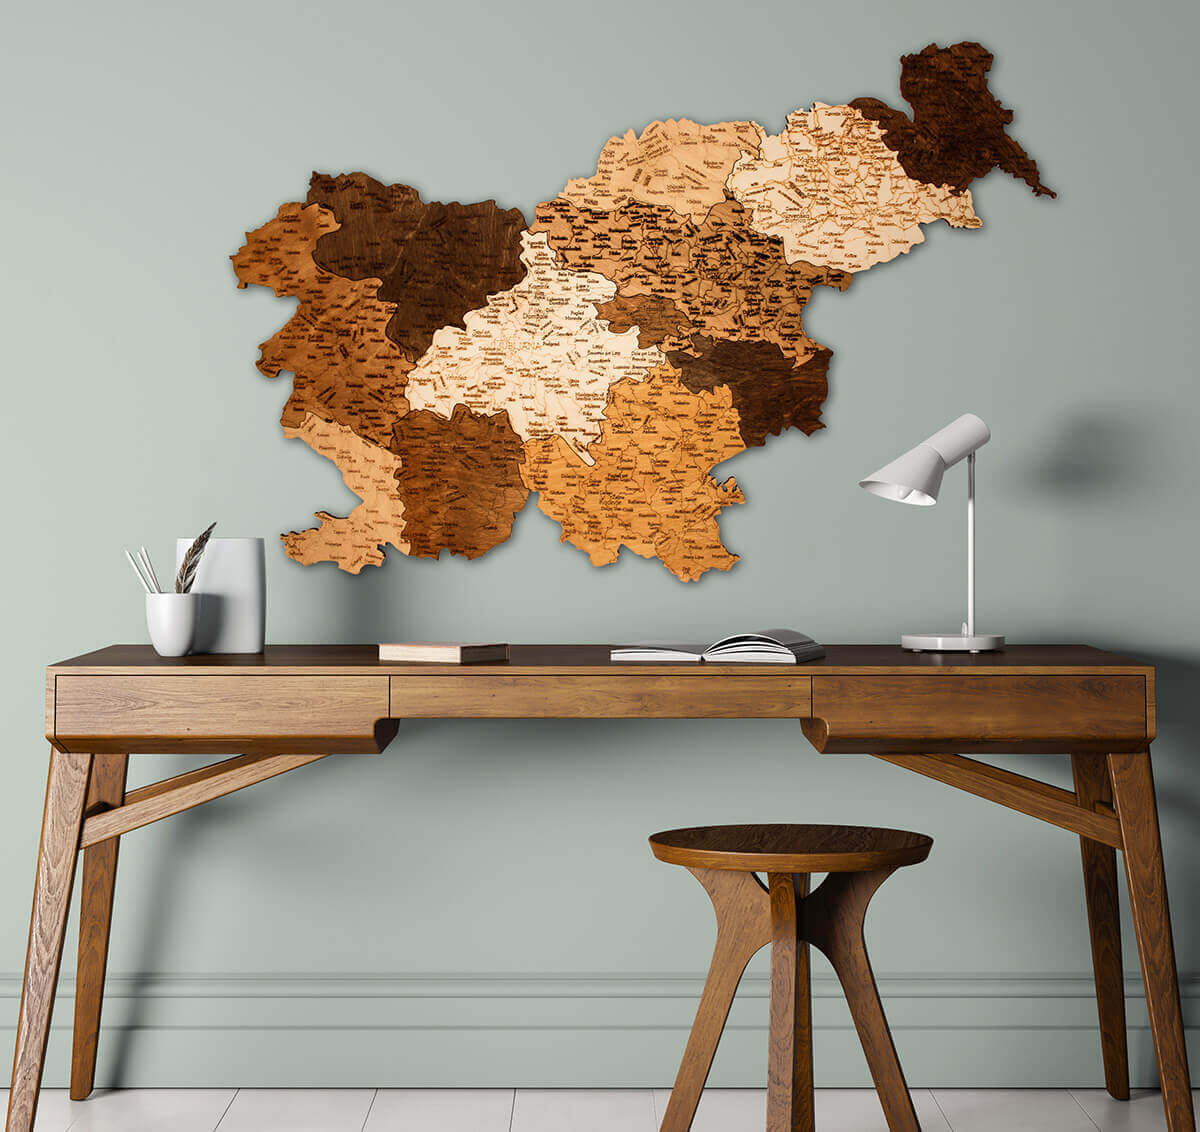 Wooden Map of Slovenia